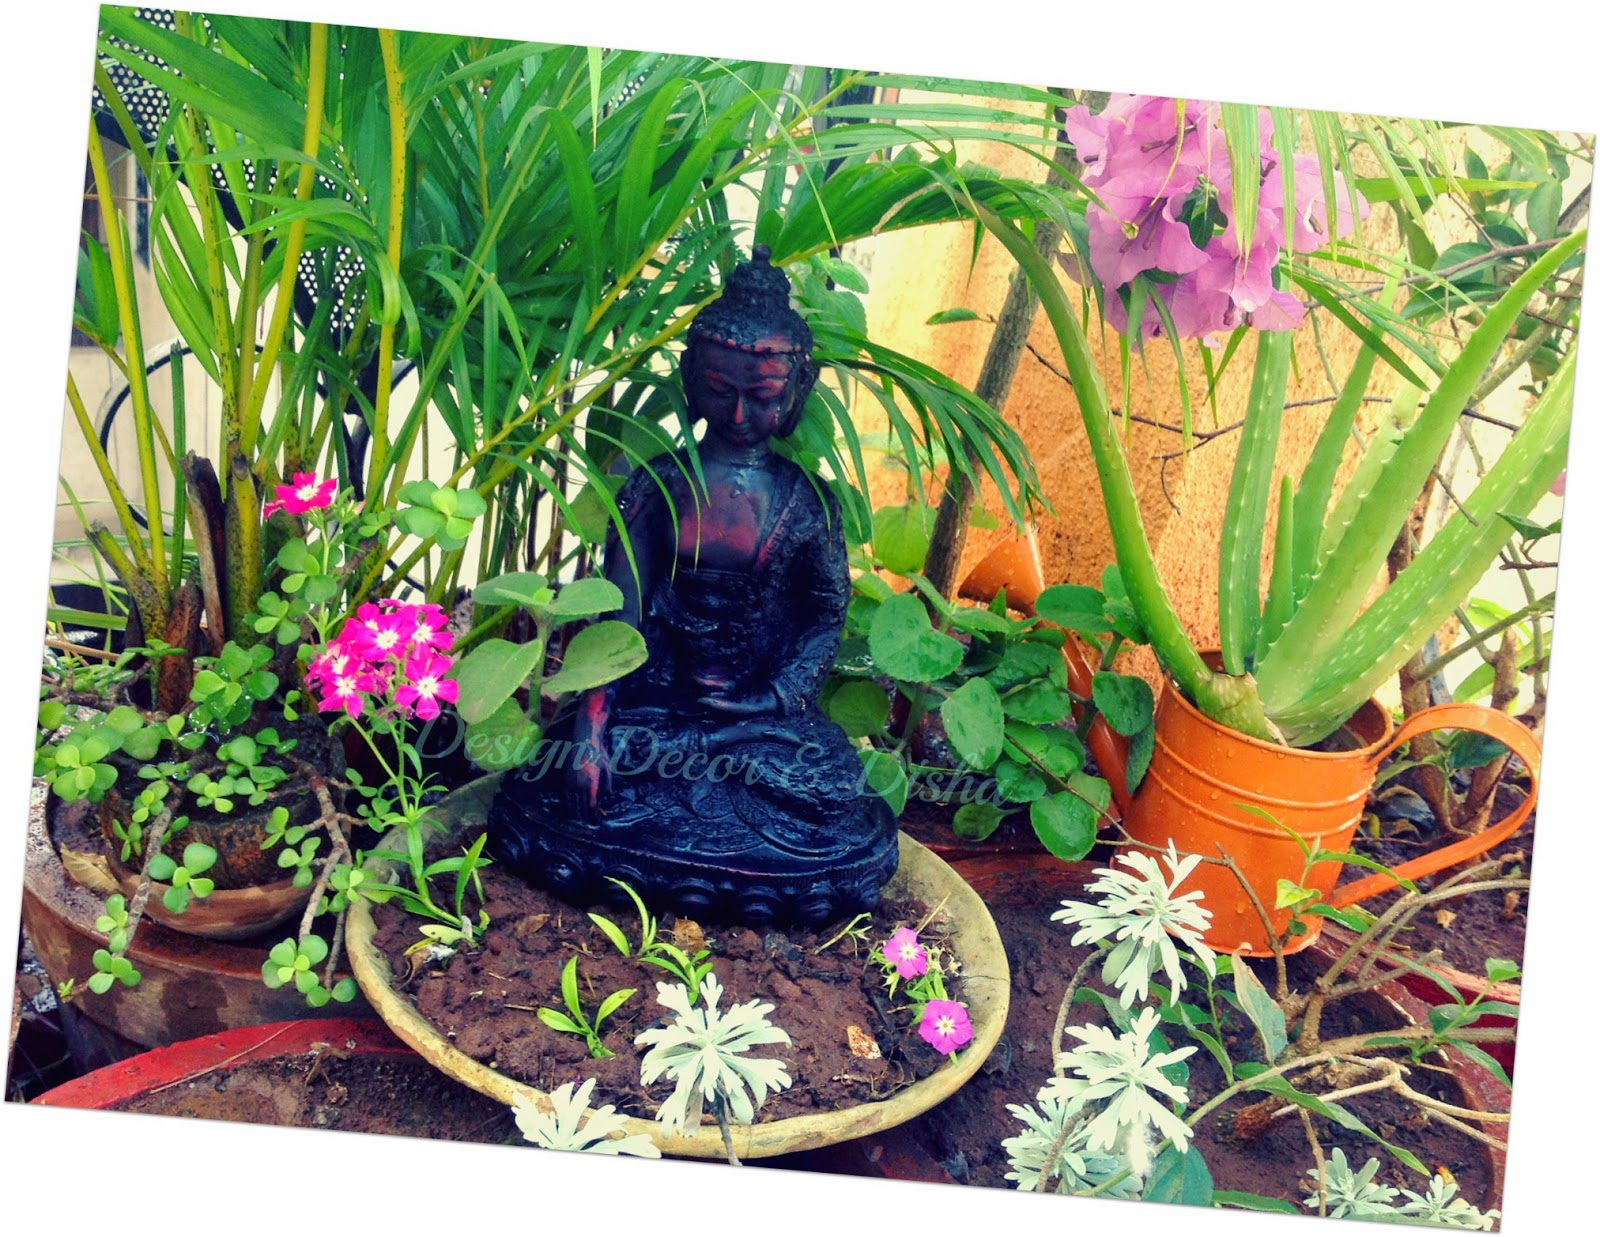 design decor & disha: quick way to beautify a garden!!